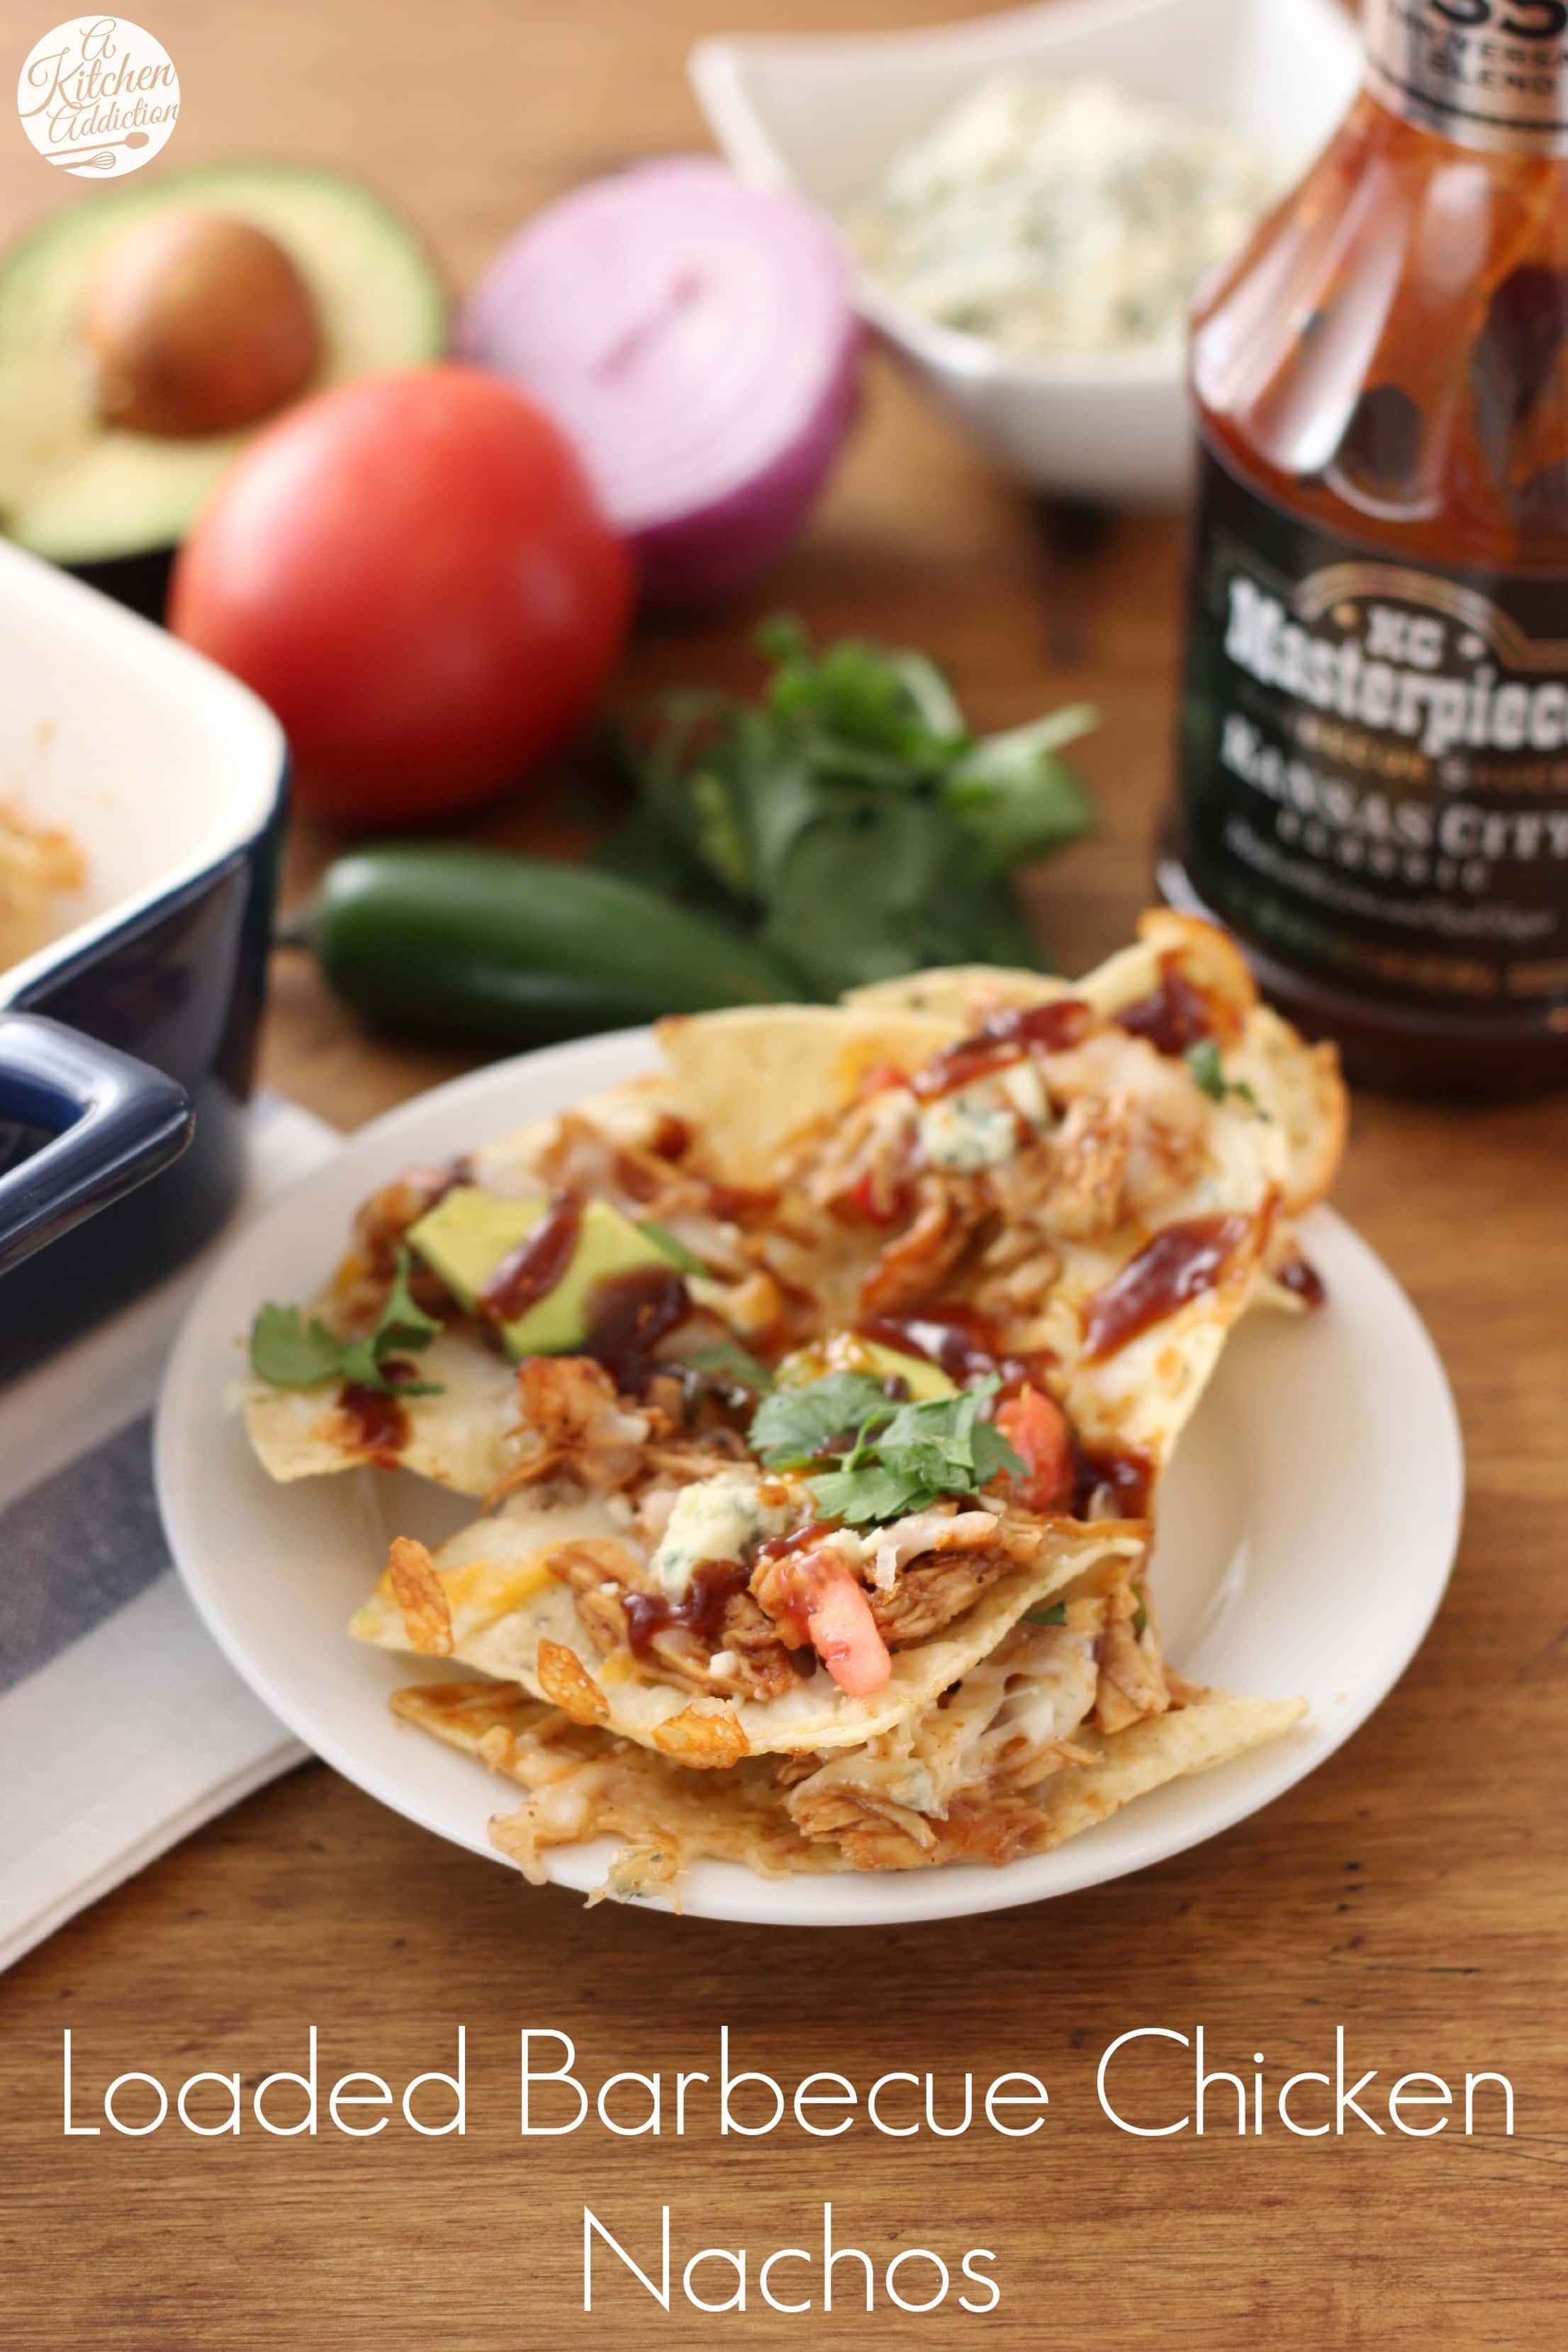 Loaded Barbecue Chicken Nachos Recipe from A Kitchen Addiction